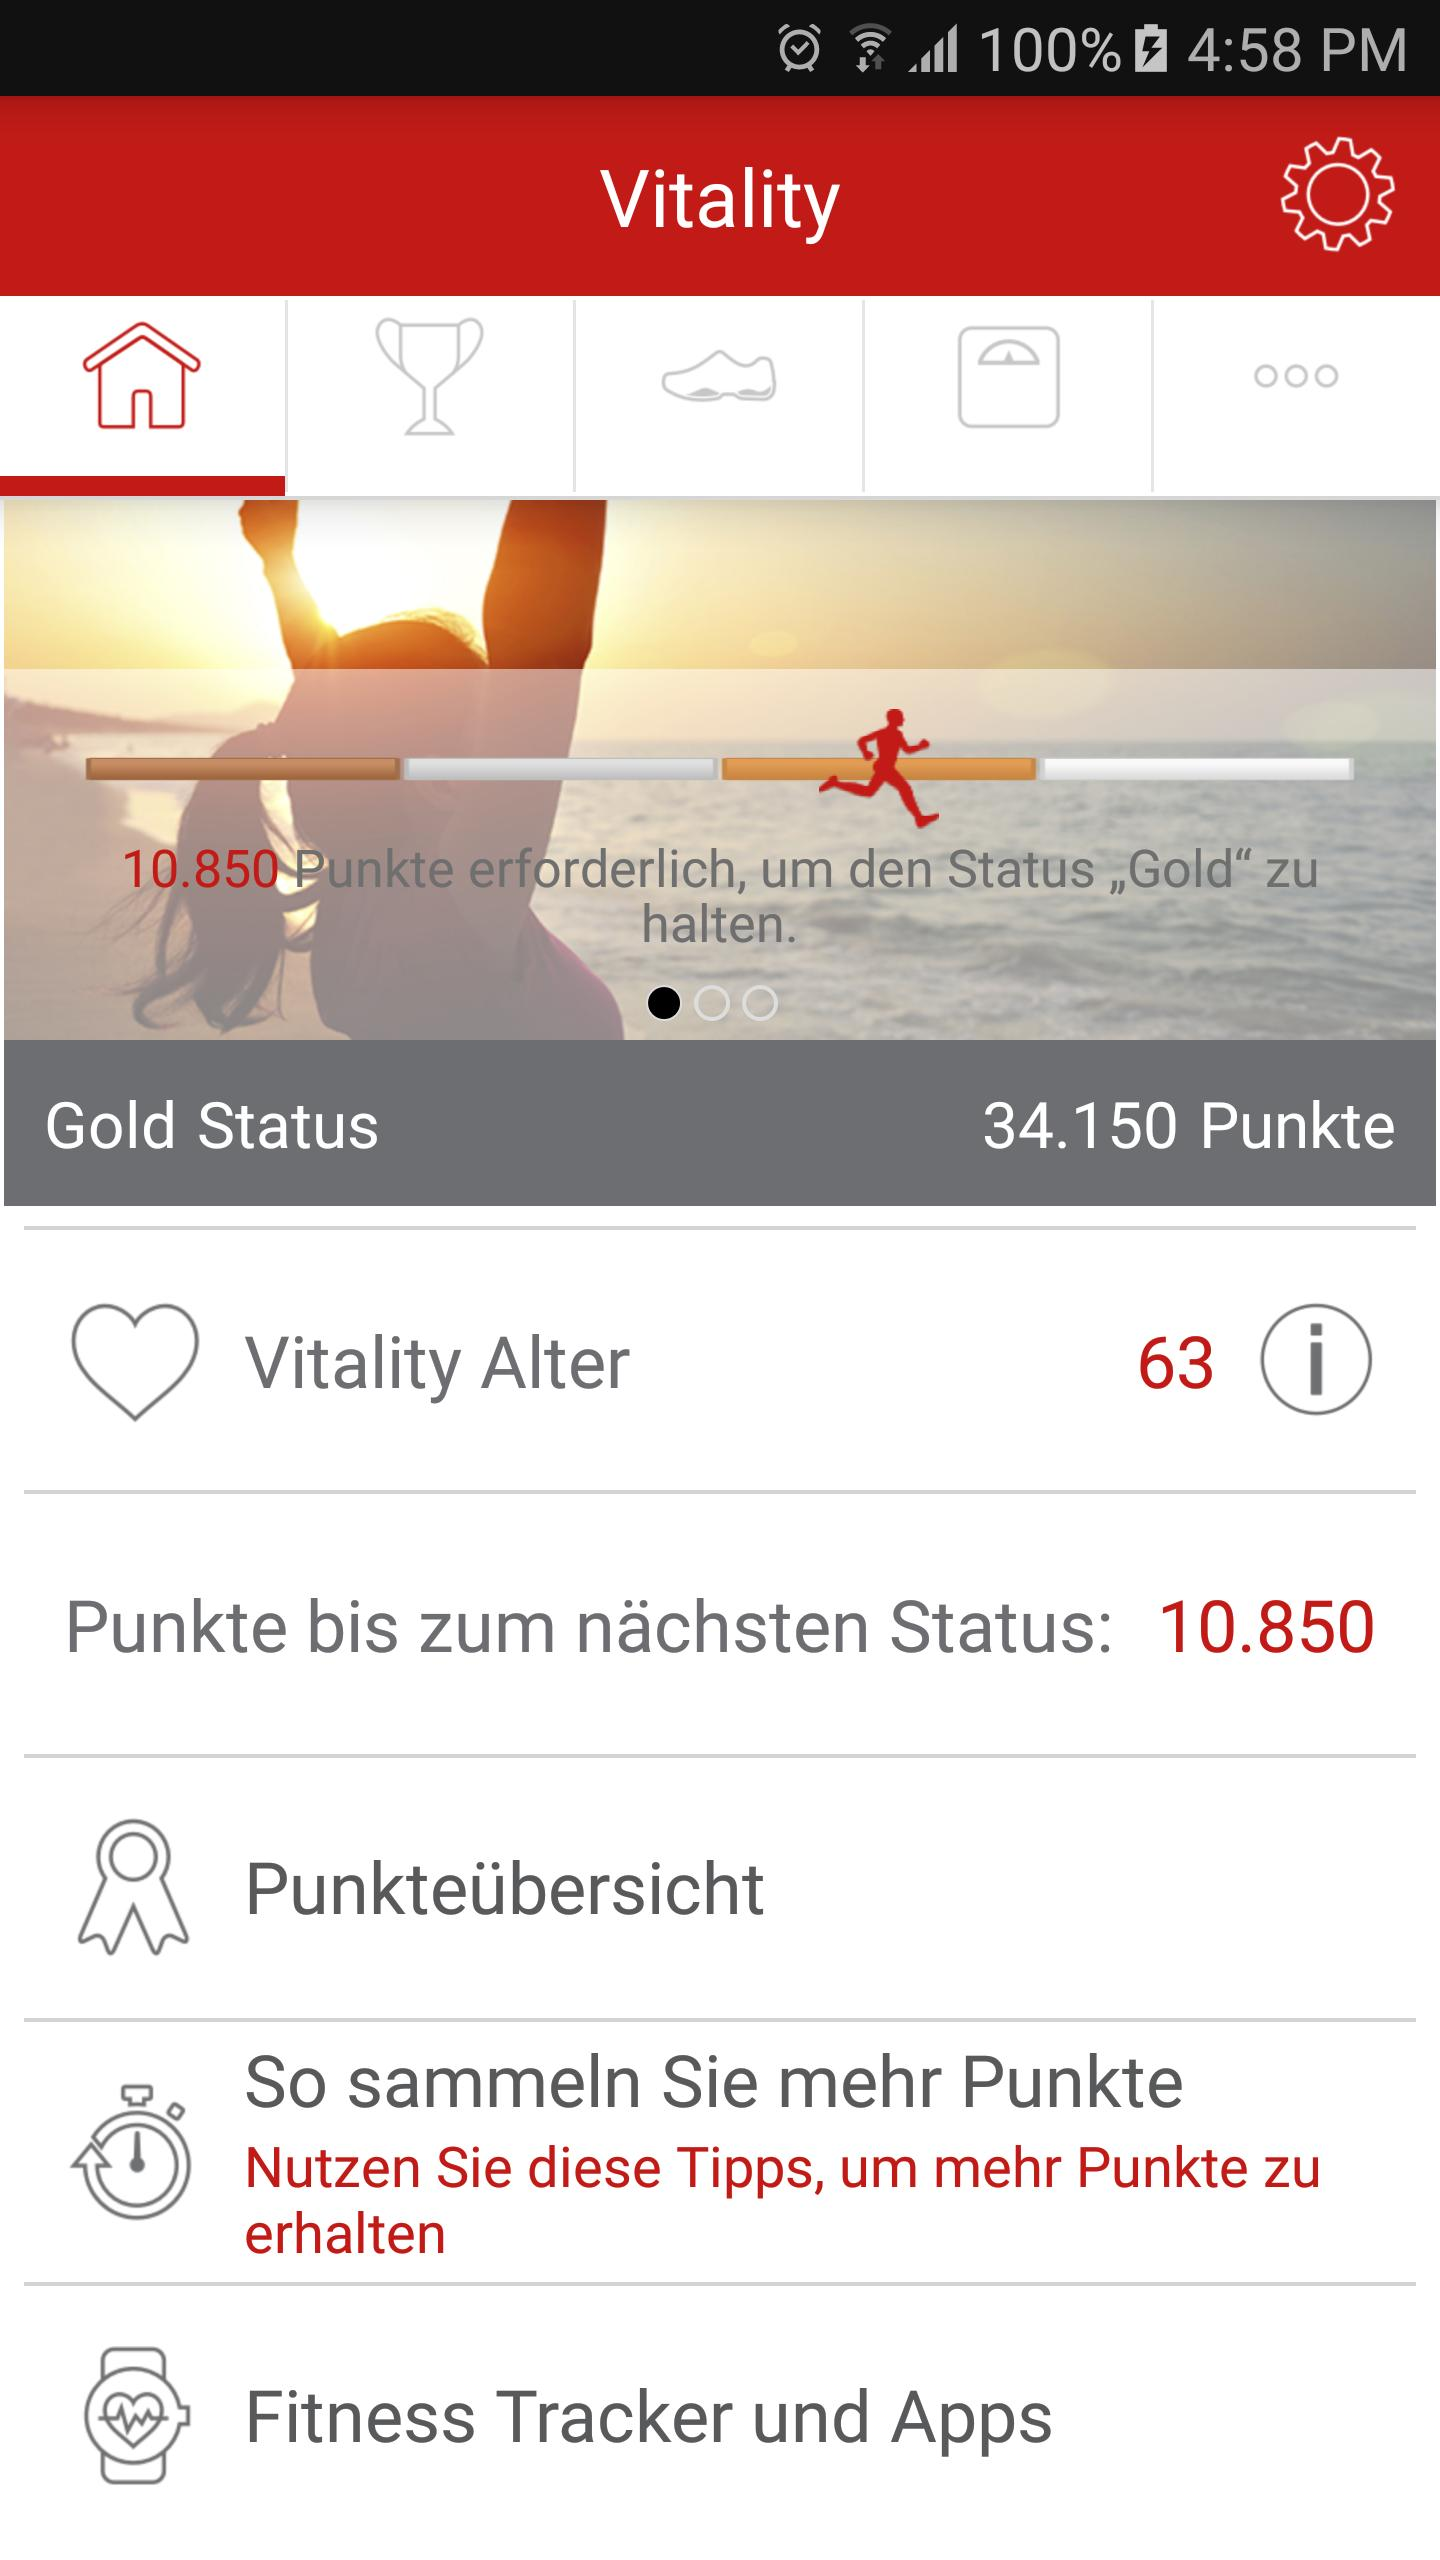 Generali Vitality For Android Apk Download